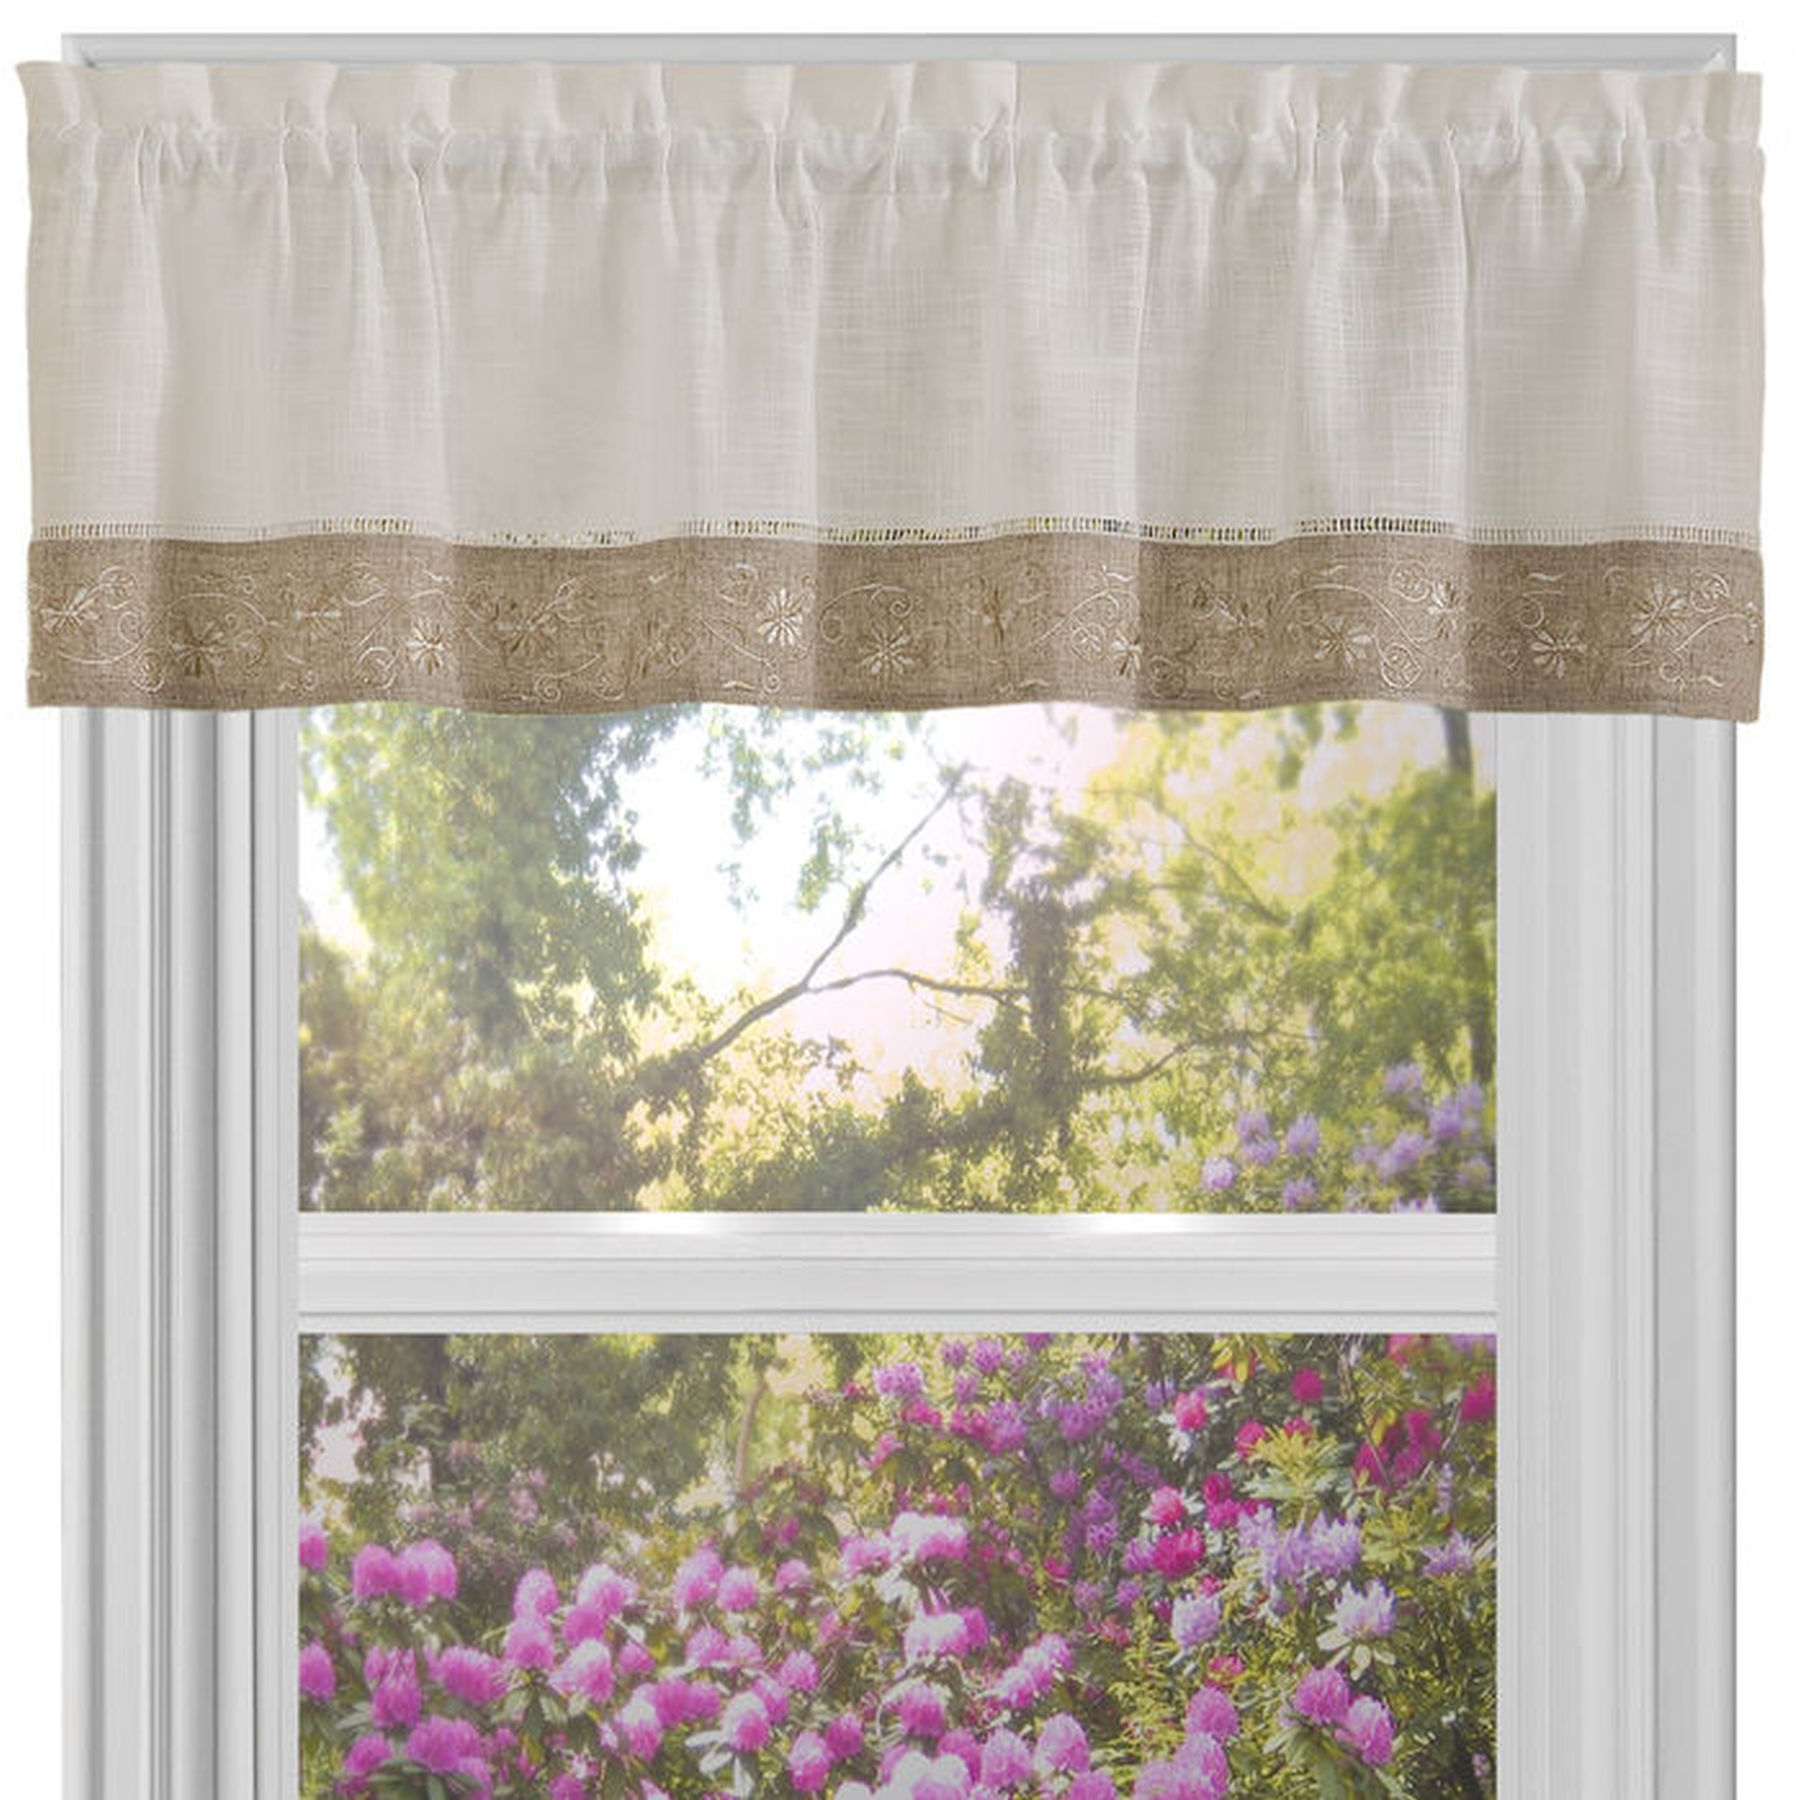 Oakwood Linen Style Decorative Window Curtain Tier Sets Within Favorite Traditional Elegance Oakwood 58x14 Window Curtain Valance – Natural (View 17 of 20)